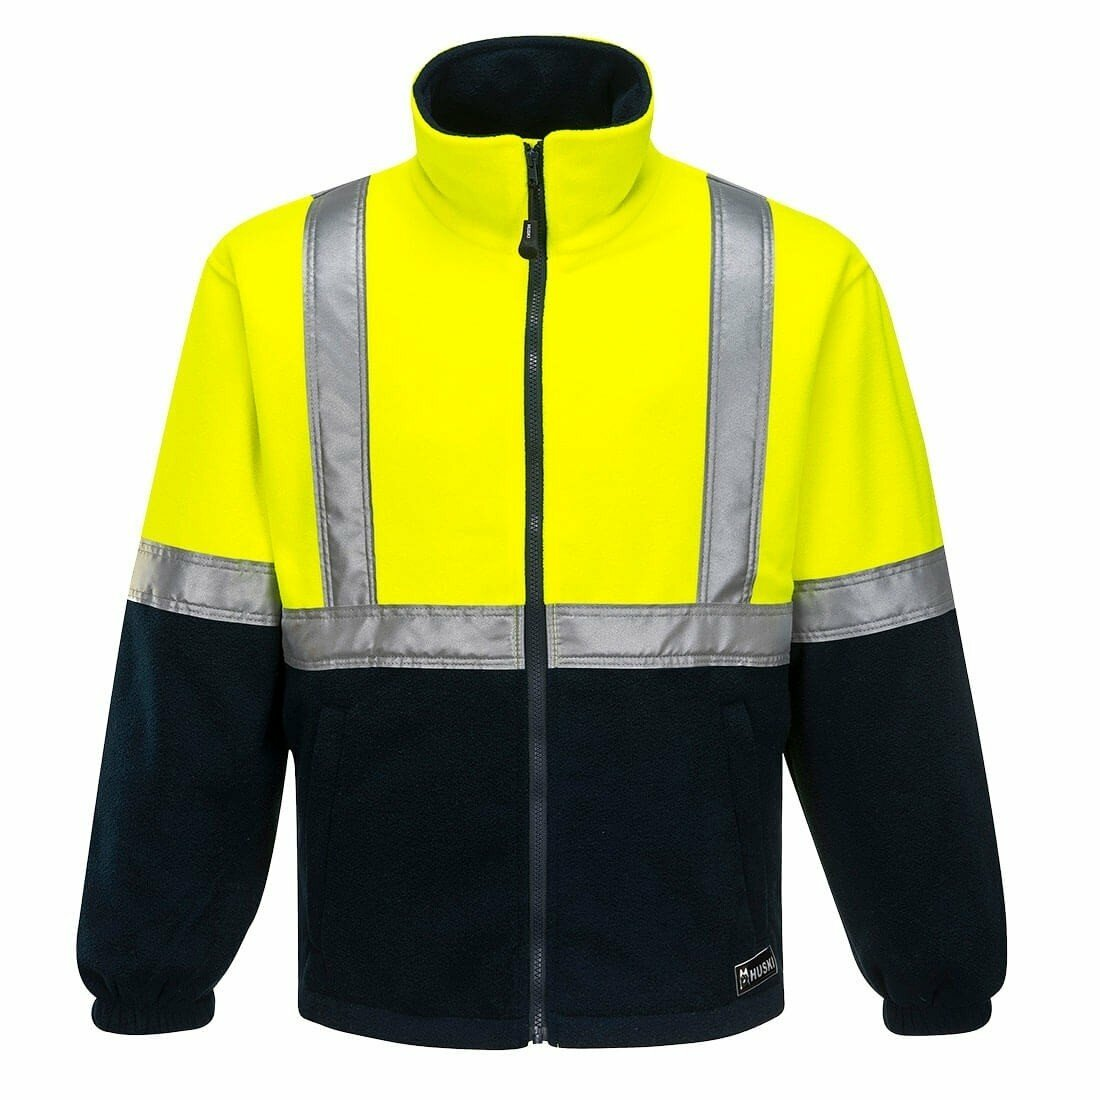 Convoy Polar Fleece Jacket